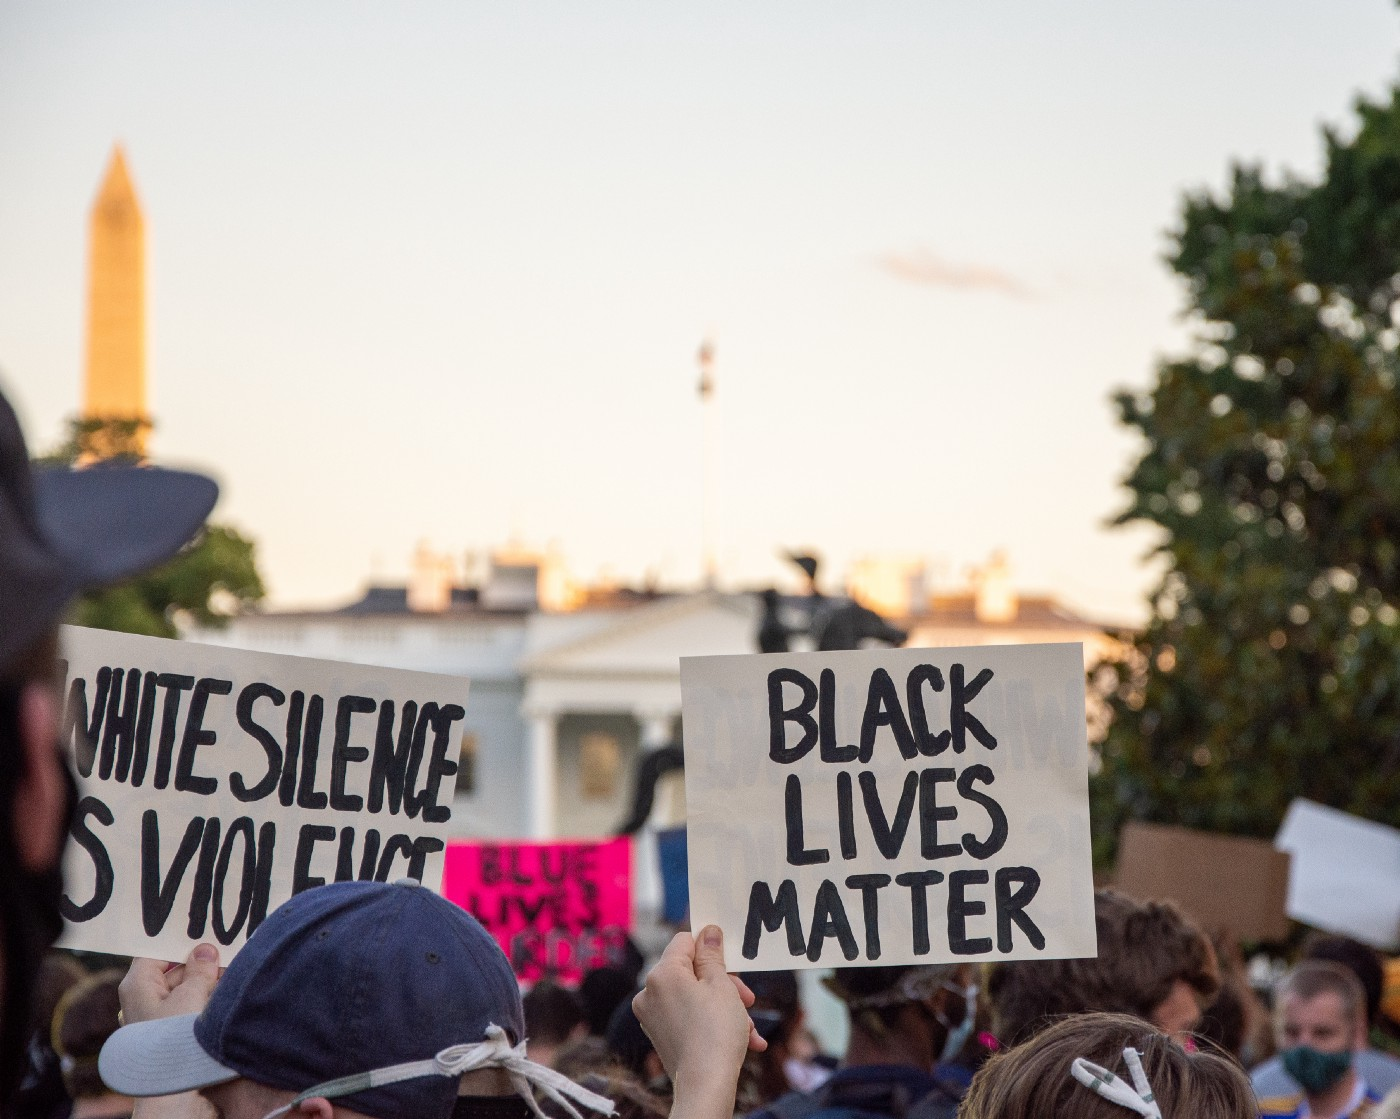 """Photo of Black Lives Matter protesters in Washington, D.C.—2 signs say """"Black Lives Matter"""" and """"White Silence is Violence"""""""